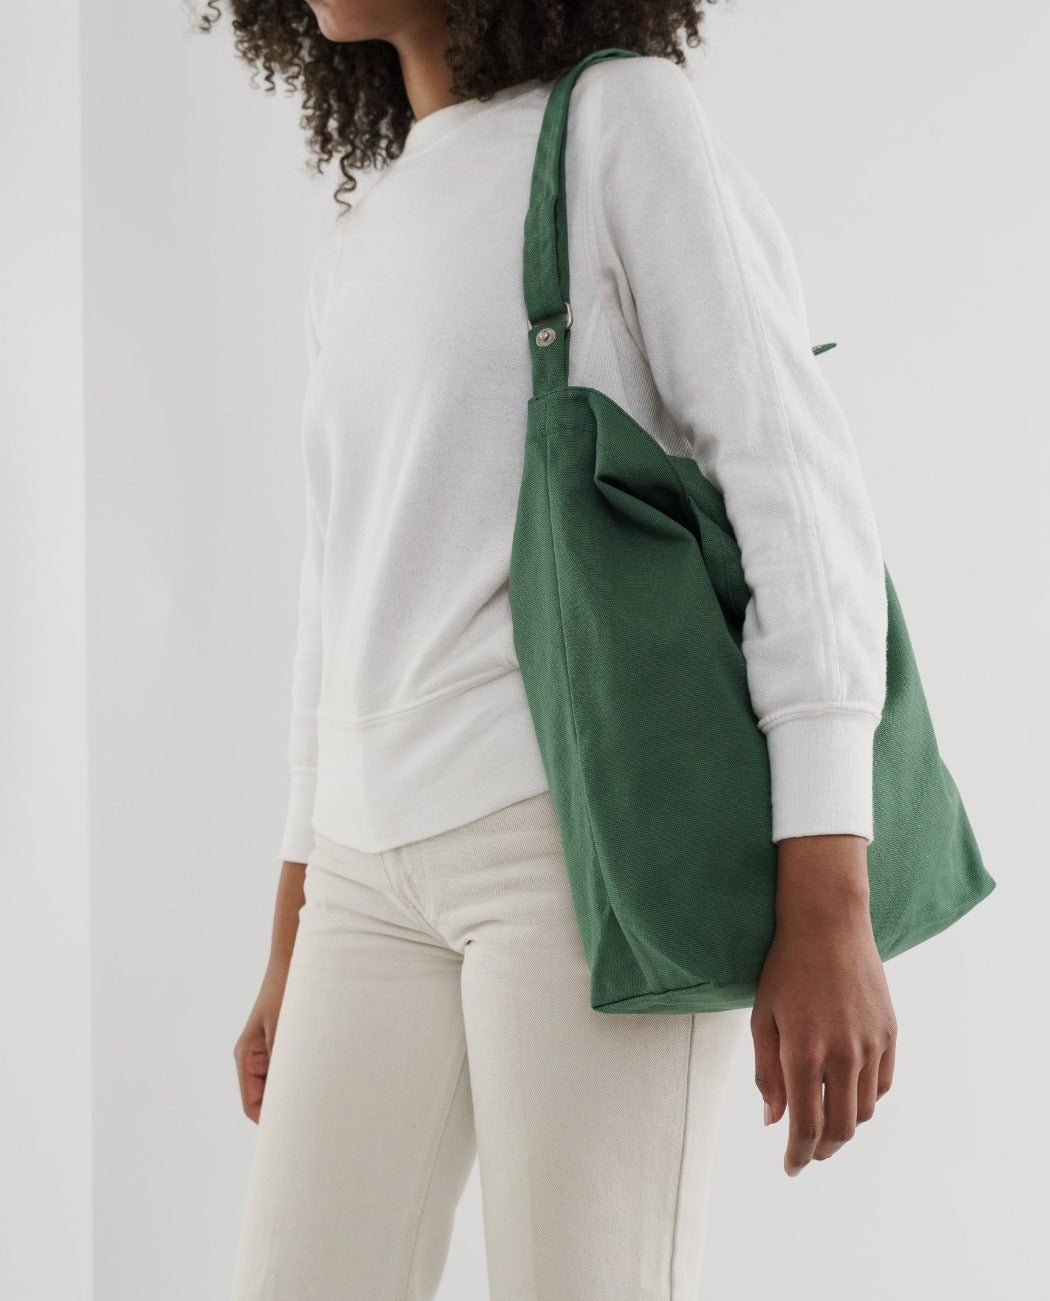 Baggu Duck Bag Eucalyptus Green Europe Netherlands Utrecht